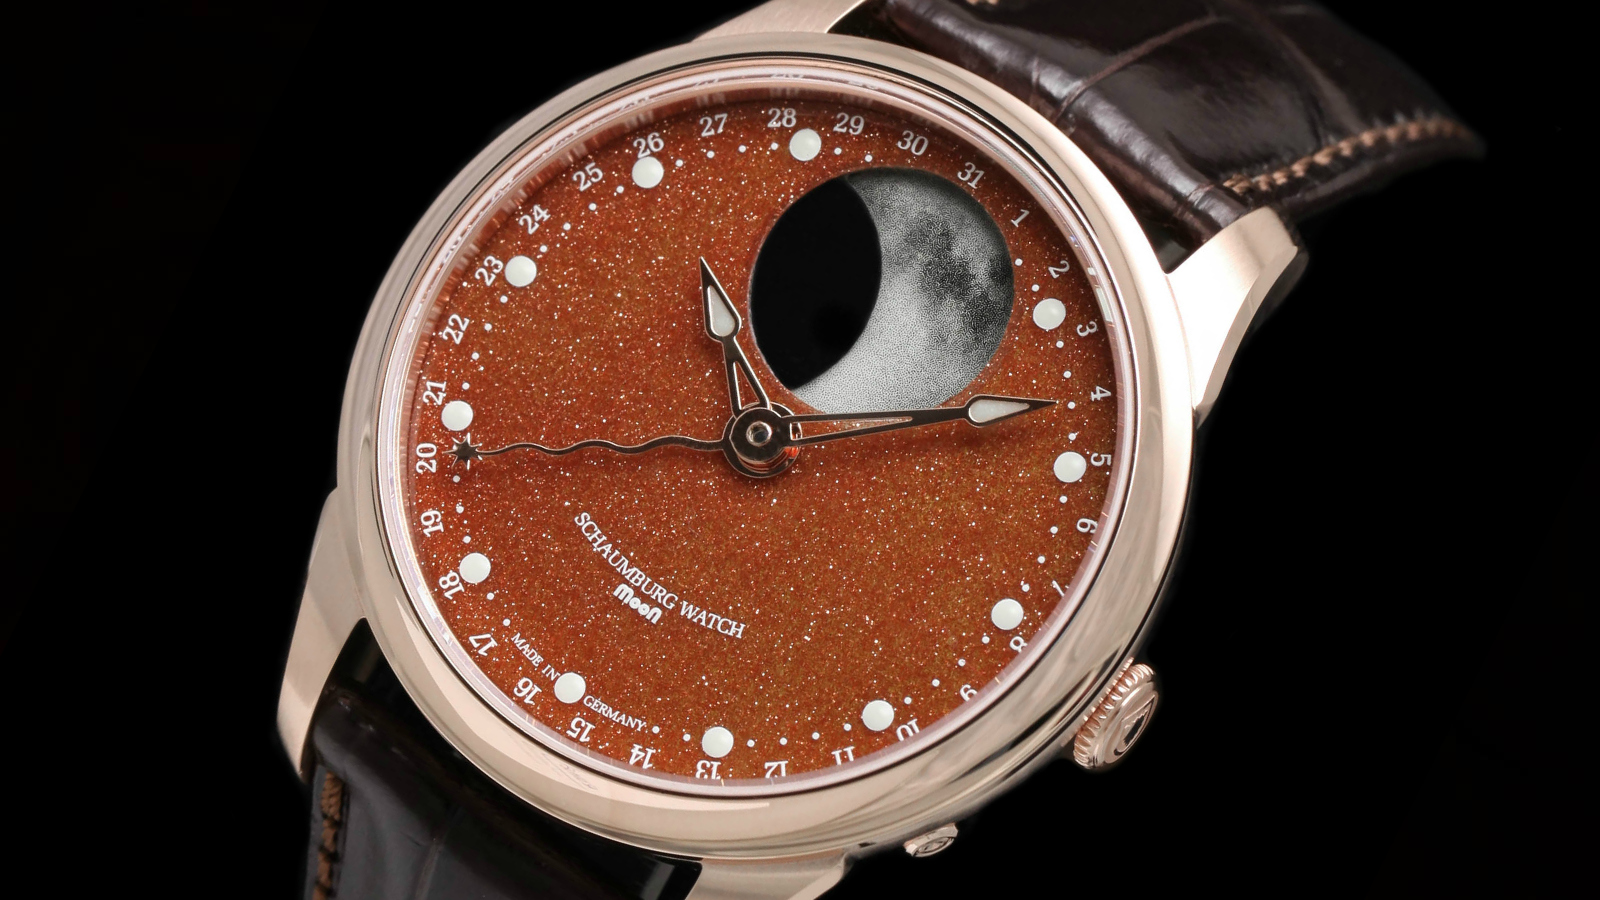 Schaumburg Watch Perpetual MooN Galaxy 18Kt rose gold watch with copper goldstone dial and luminous moon phase by Chronolux Fine Watches, Authorised dealer for Schaumburg Watch.